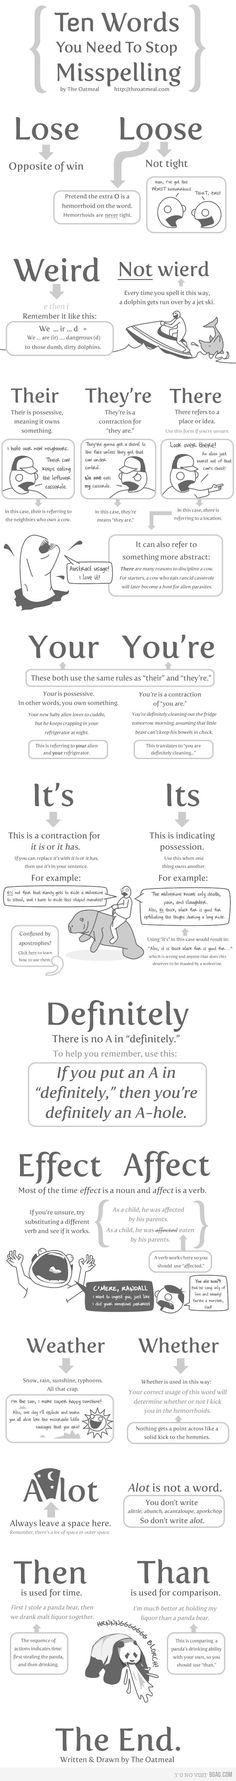 10 Words You Need To Stop Misspelling --- Ok, it's not like I could post something from The Oatmeal in my classroom. Not exactly appropriate for 7th-grade parents (the students would be fine, I'm sure). But this tip on A LOT is priceless!!! I am making a poster of just that.